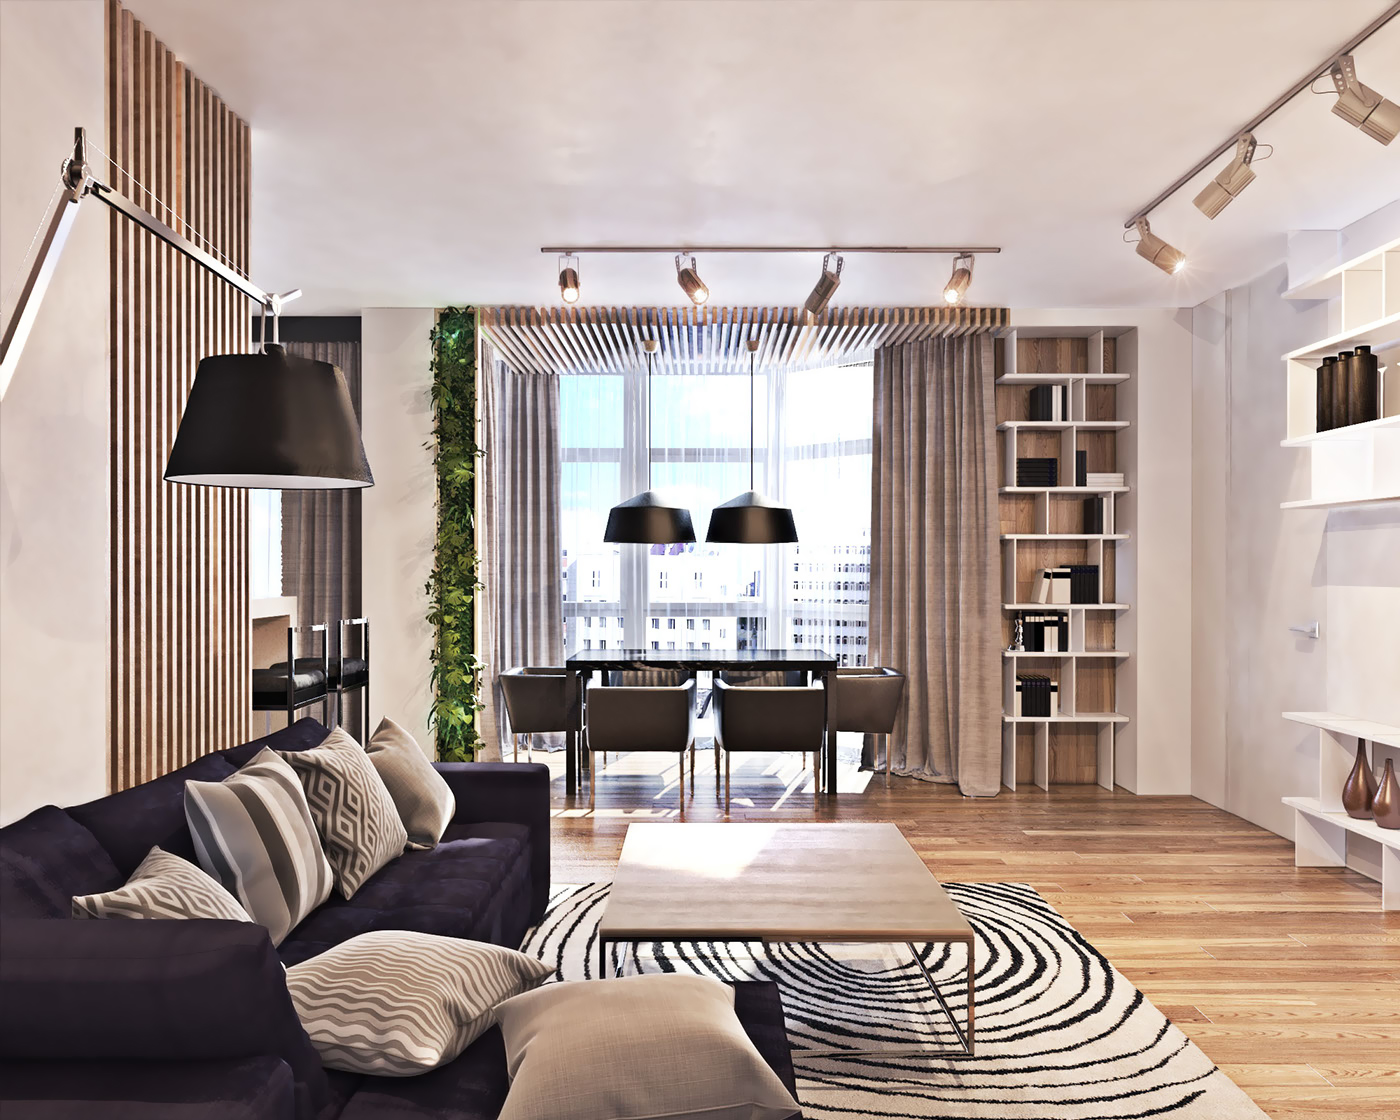 Contemporary Interior Design Style   Small Design Ideas Contemporary Interior Design Style  Bookshelves and focused lighting for  the modern space